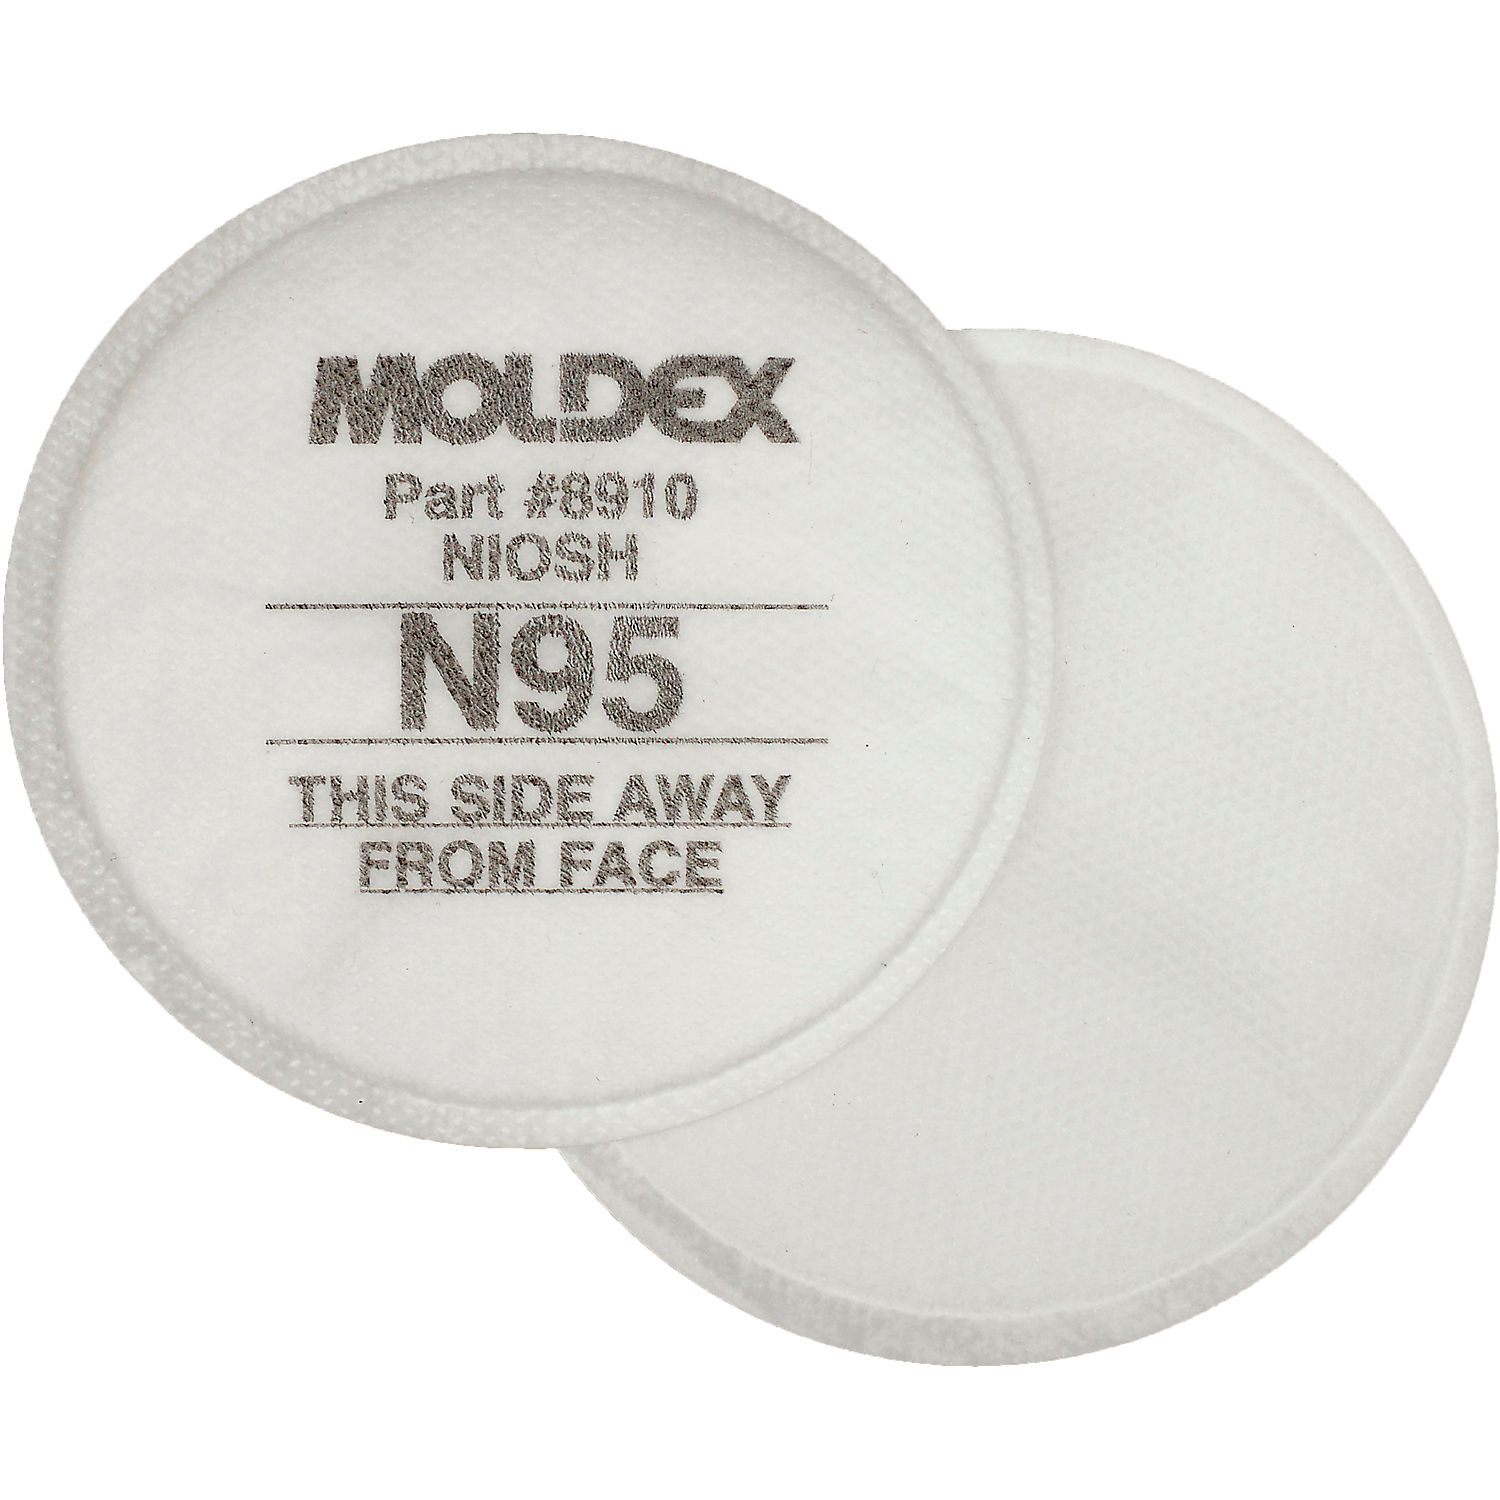 Moldex Respiratory Filters Protection amp; Cartridges N95 8910